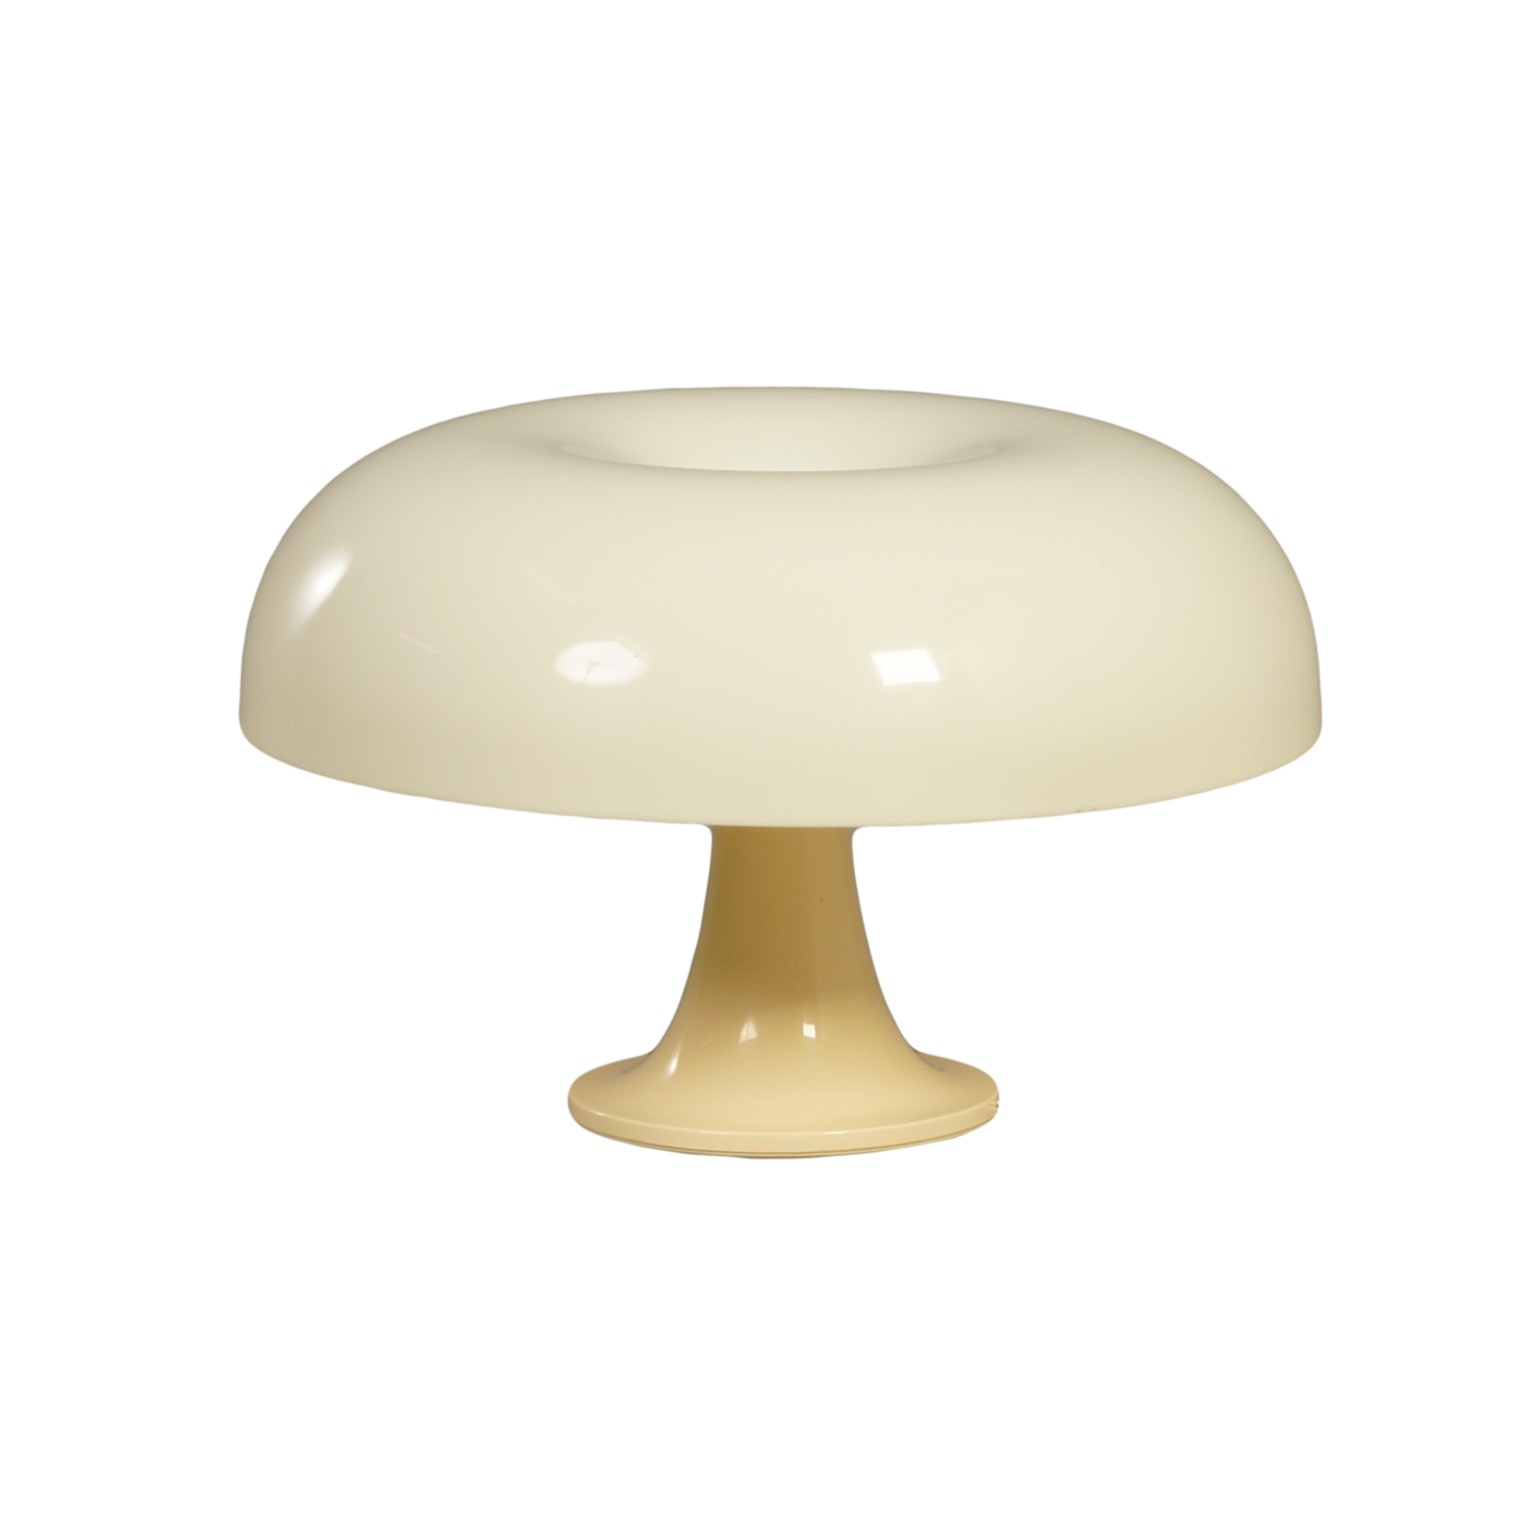 Nesso Table Lamp By Giancarlo Mattioli For Artemide 1960s